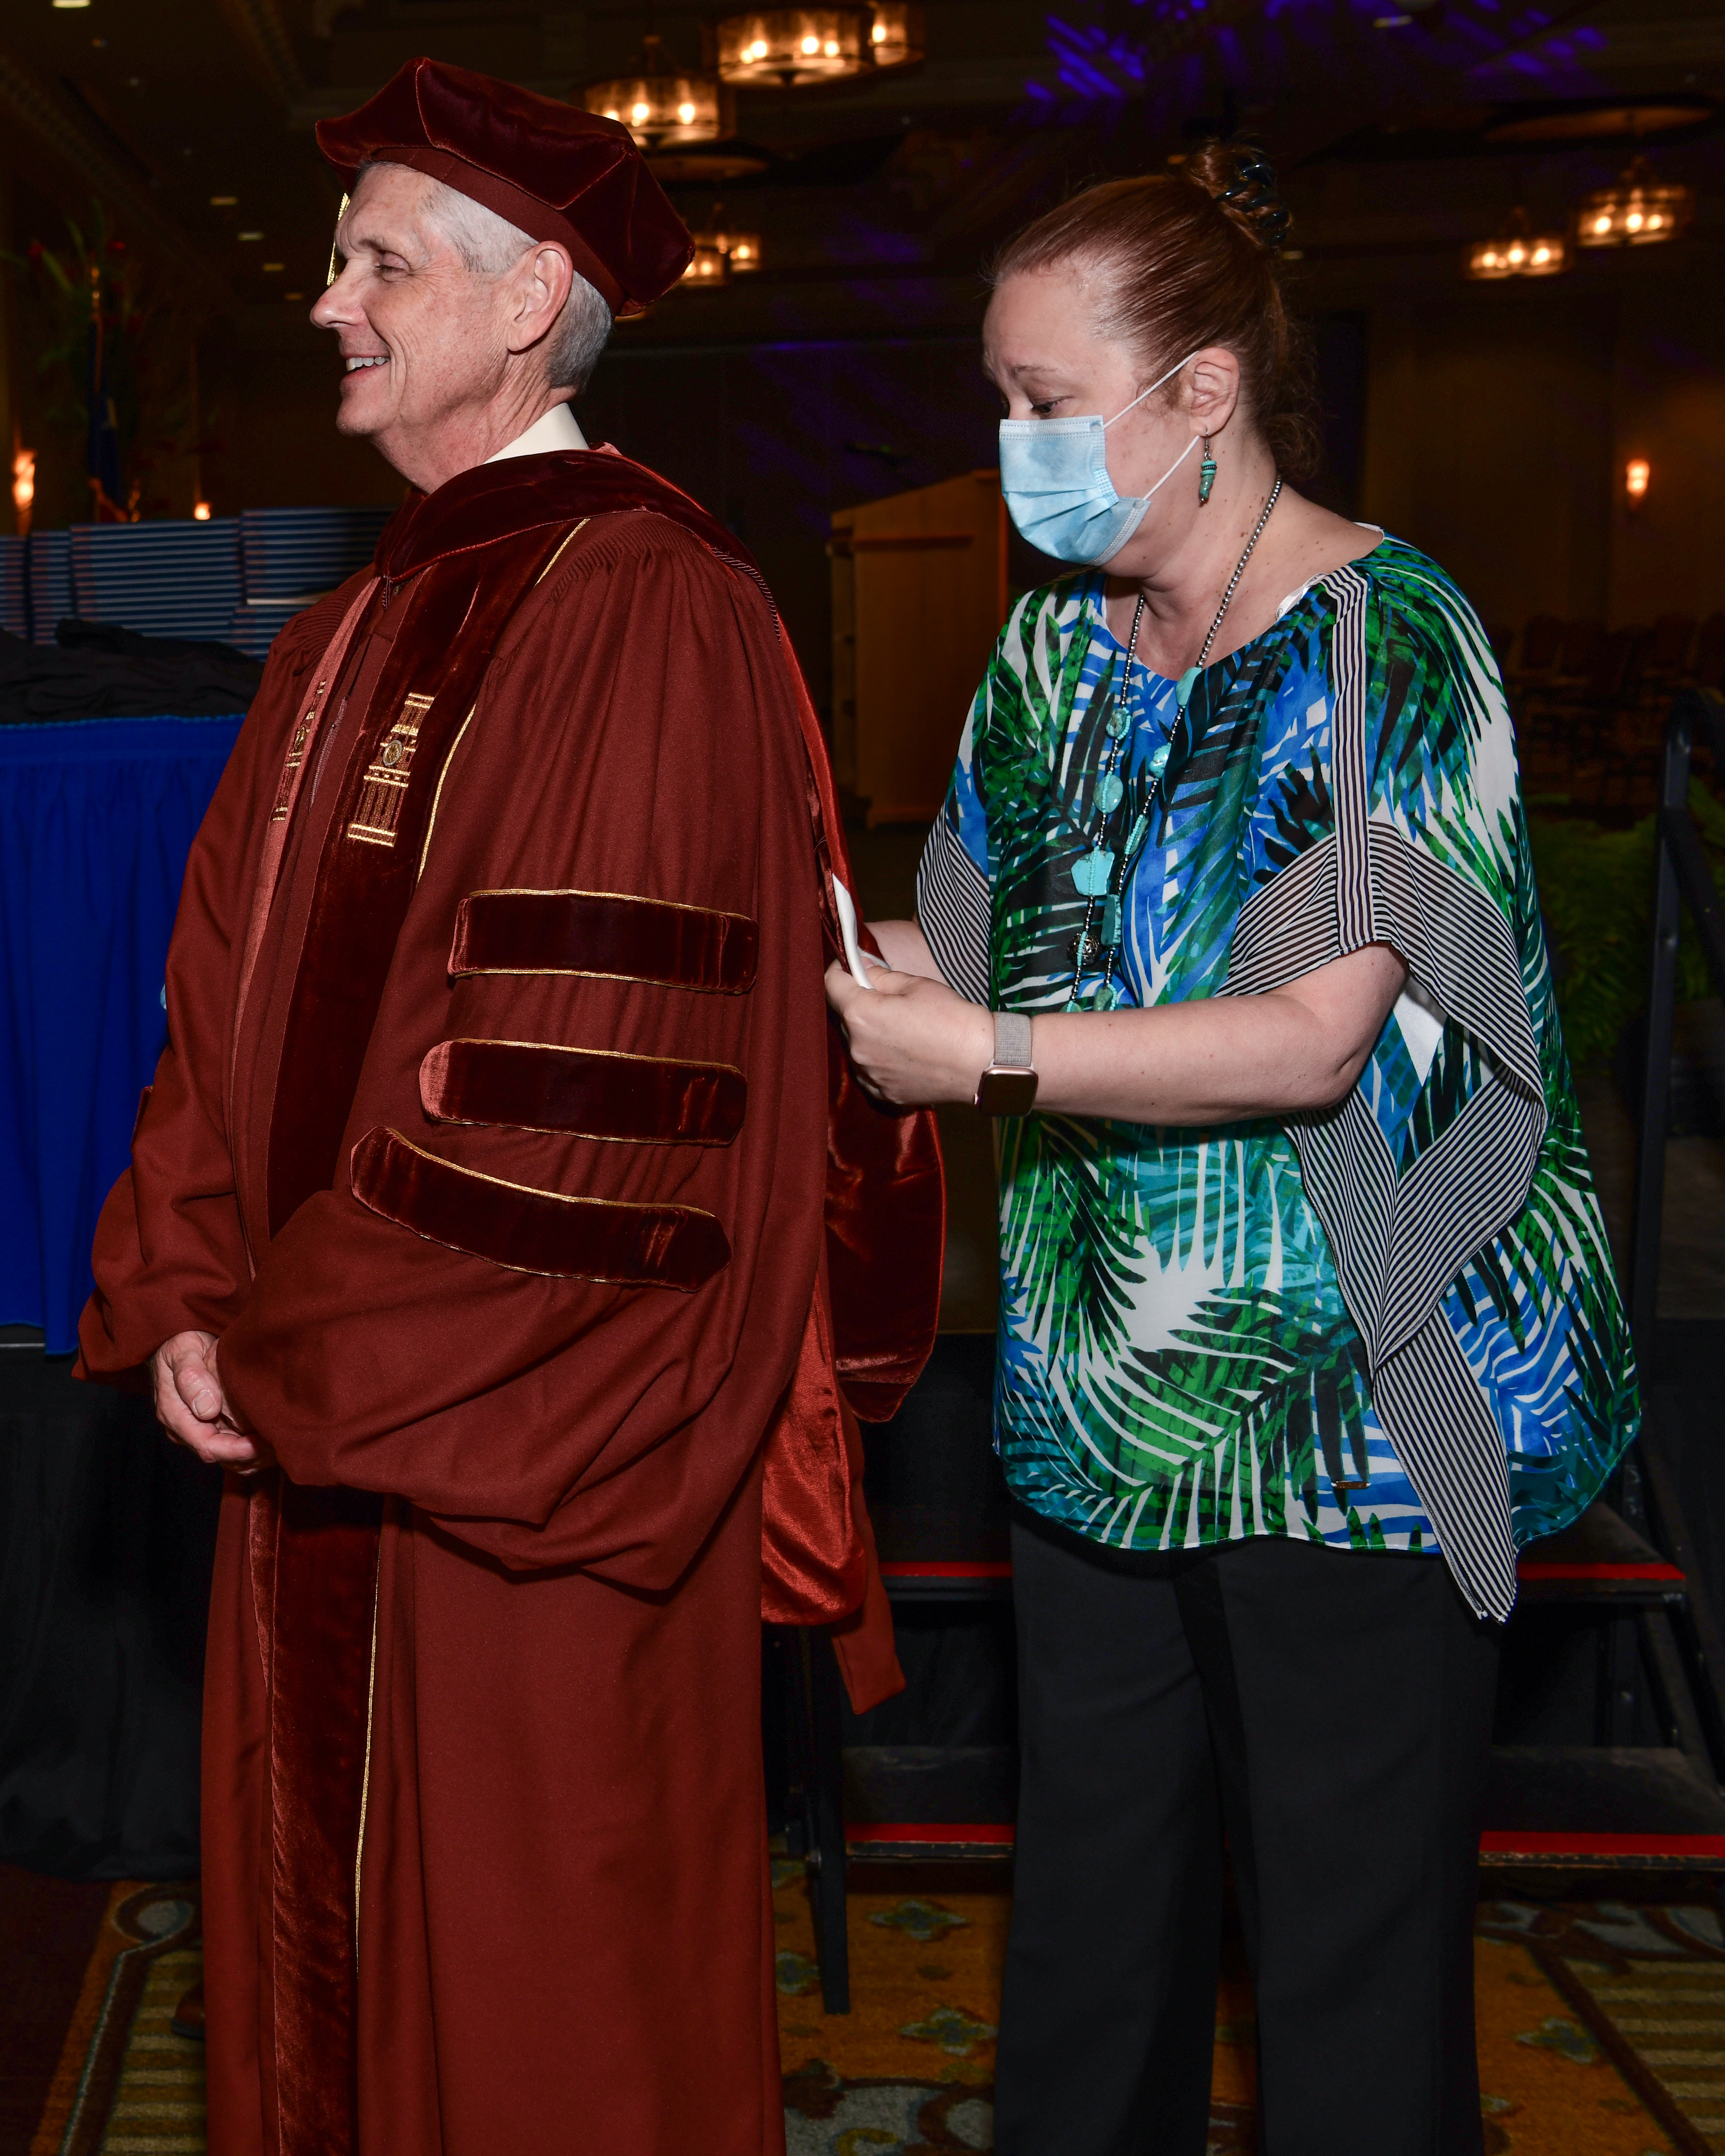 Jeannette Adams helps Dr. McLaughlin get ready for the graduation ceremony.